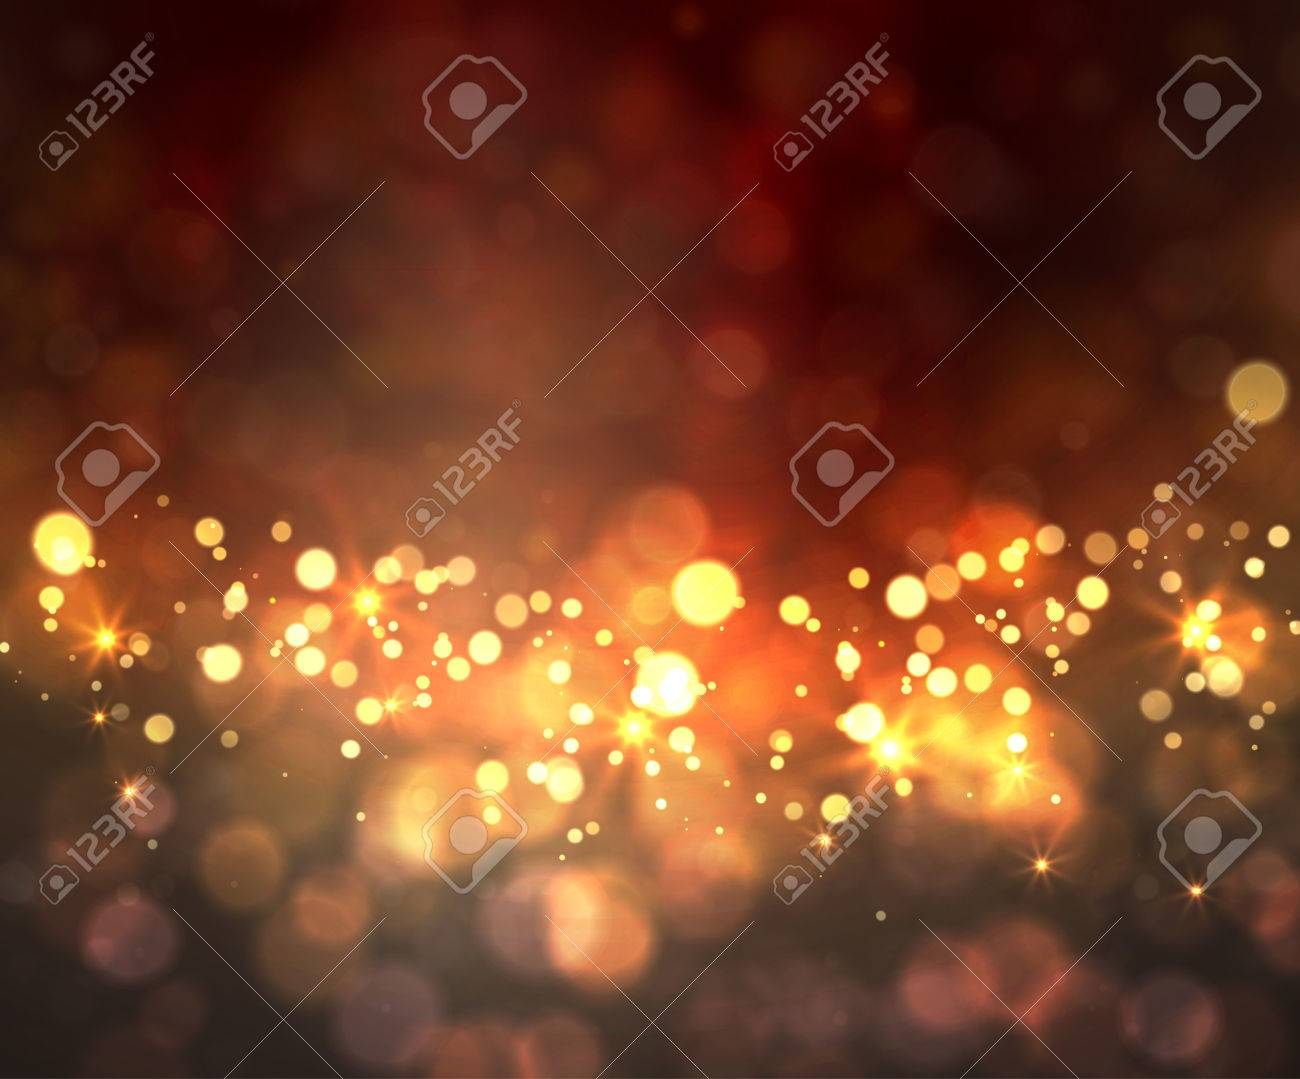 Festive light background with bokeh and stars - 52547168